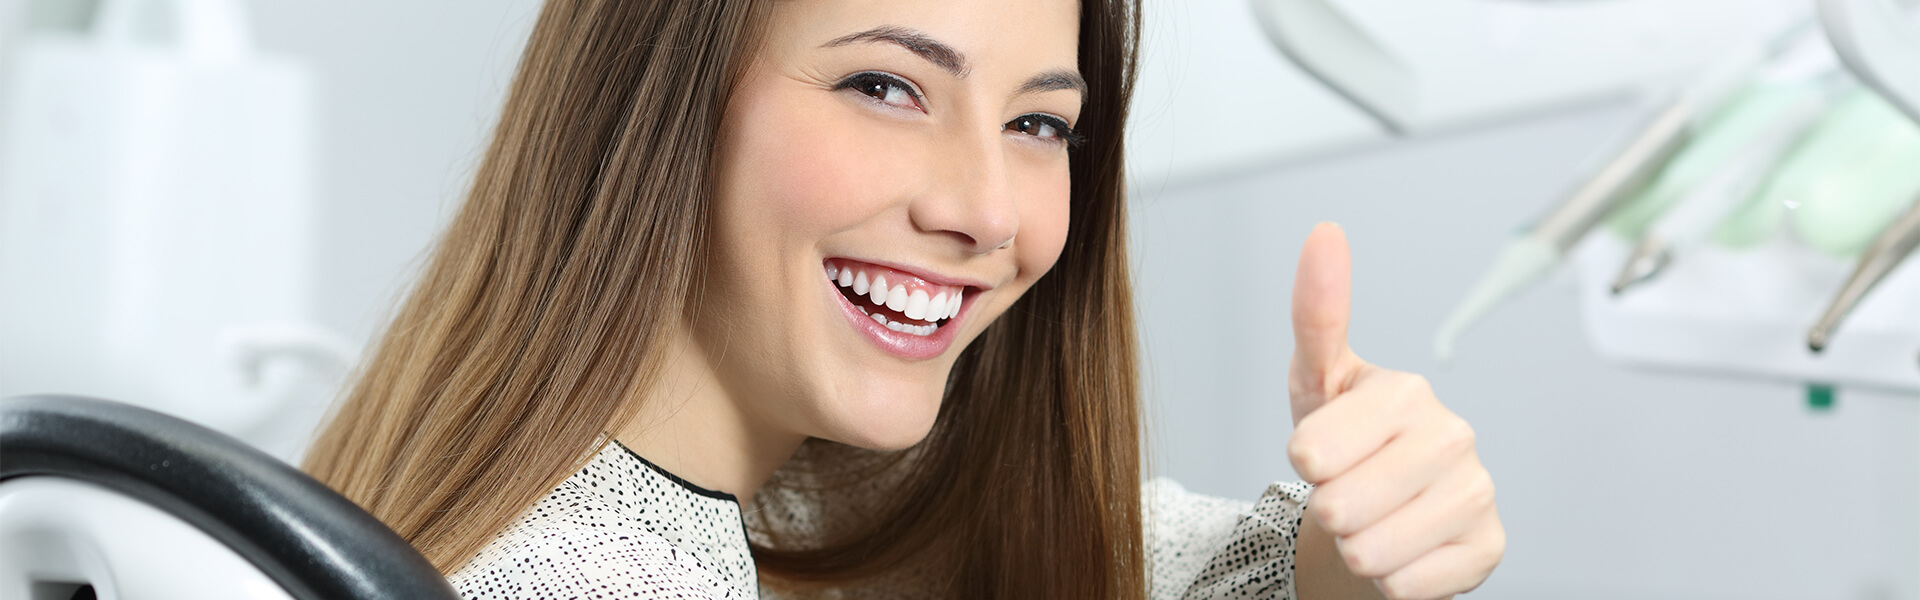 Virtual Smile Makeover in Suffern, NY